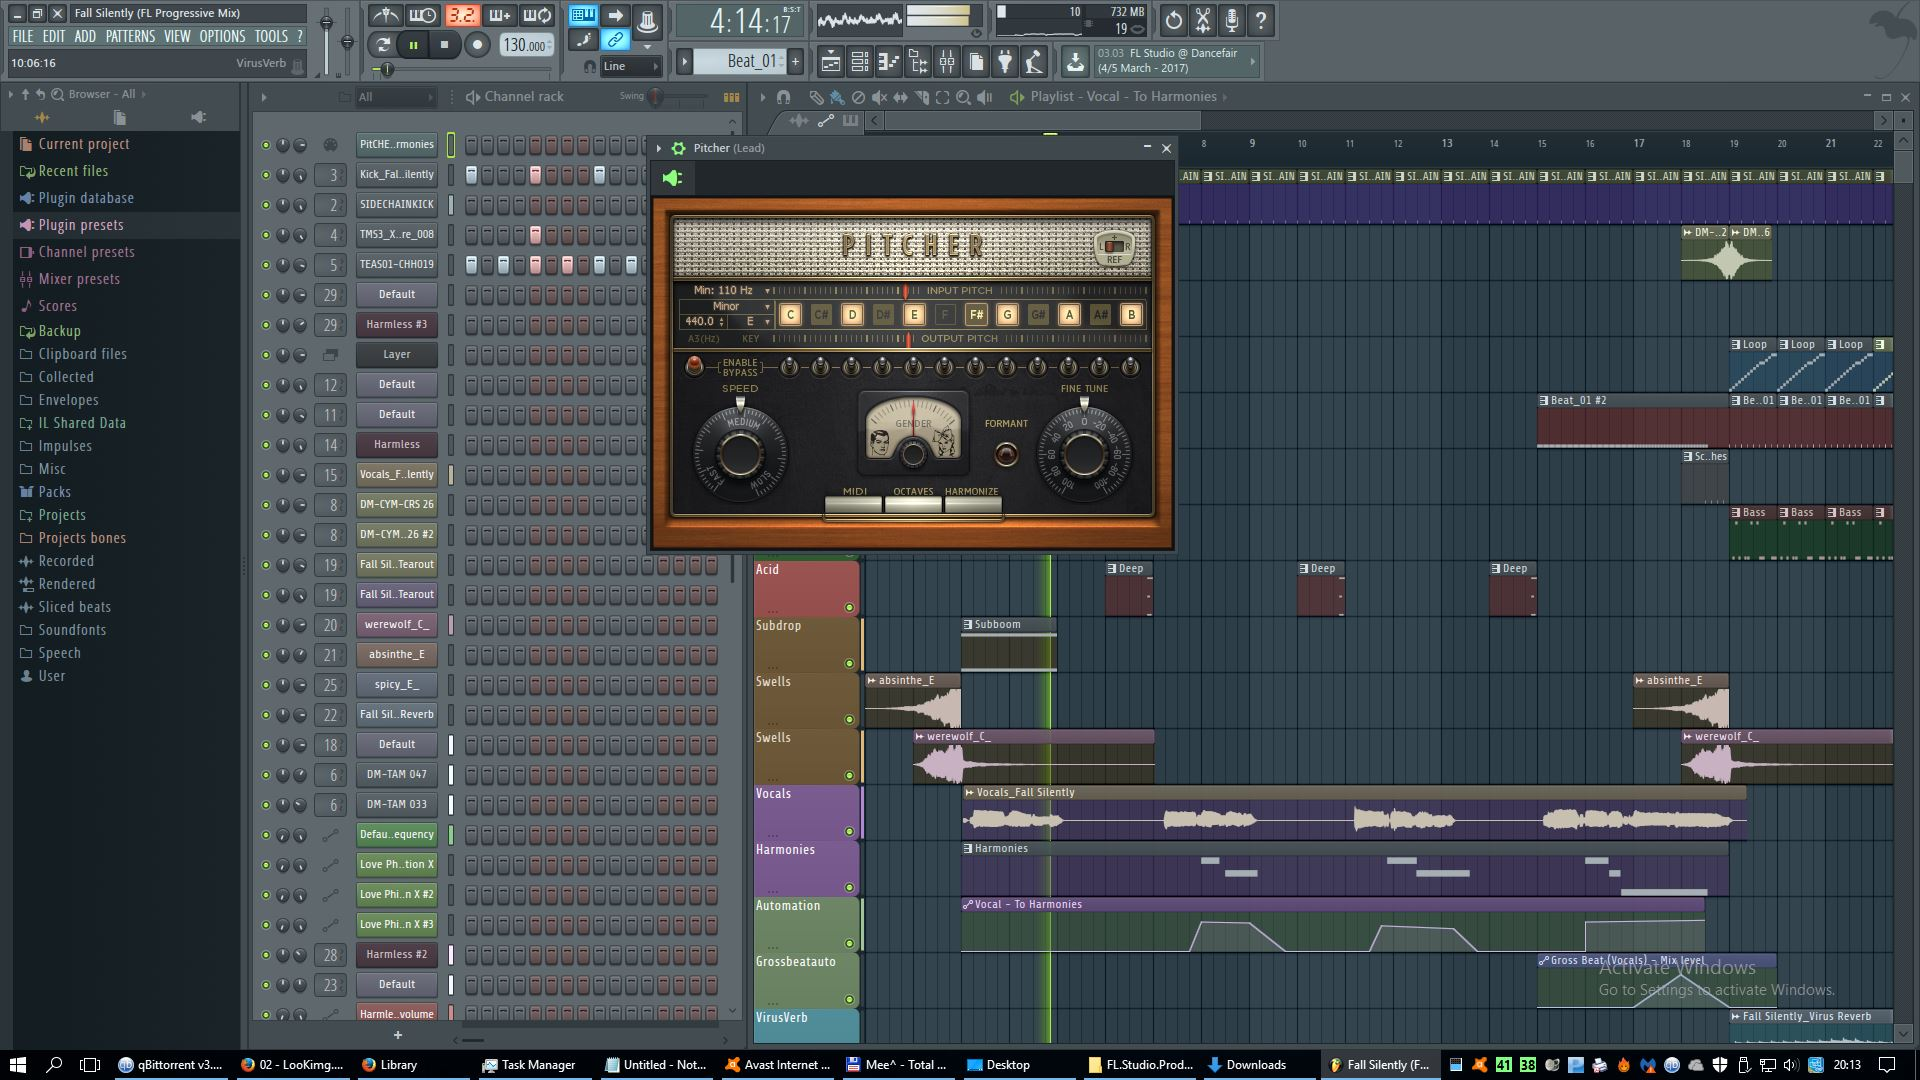 download fl studio 12.4.1 all plugins crack torrent